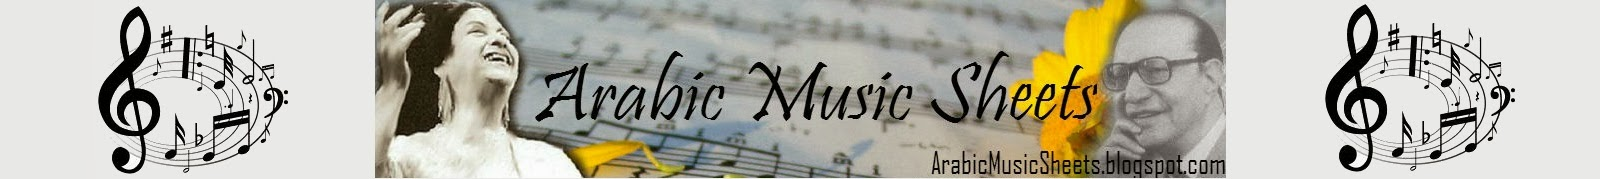 Arabic Music Sheets